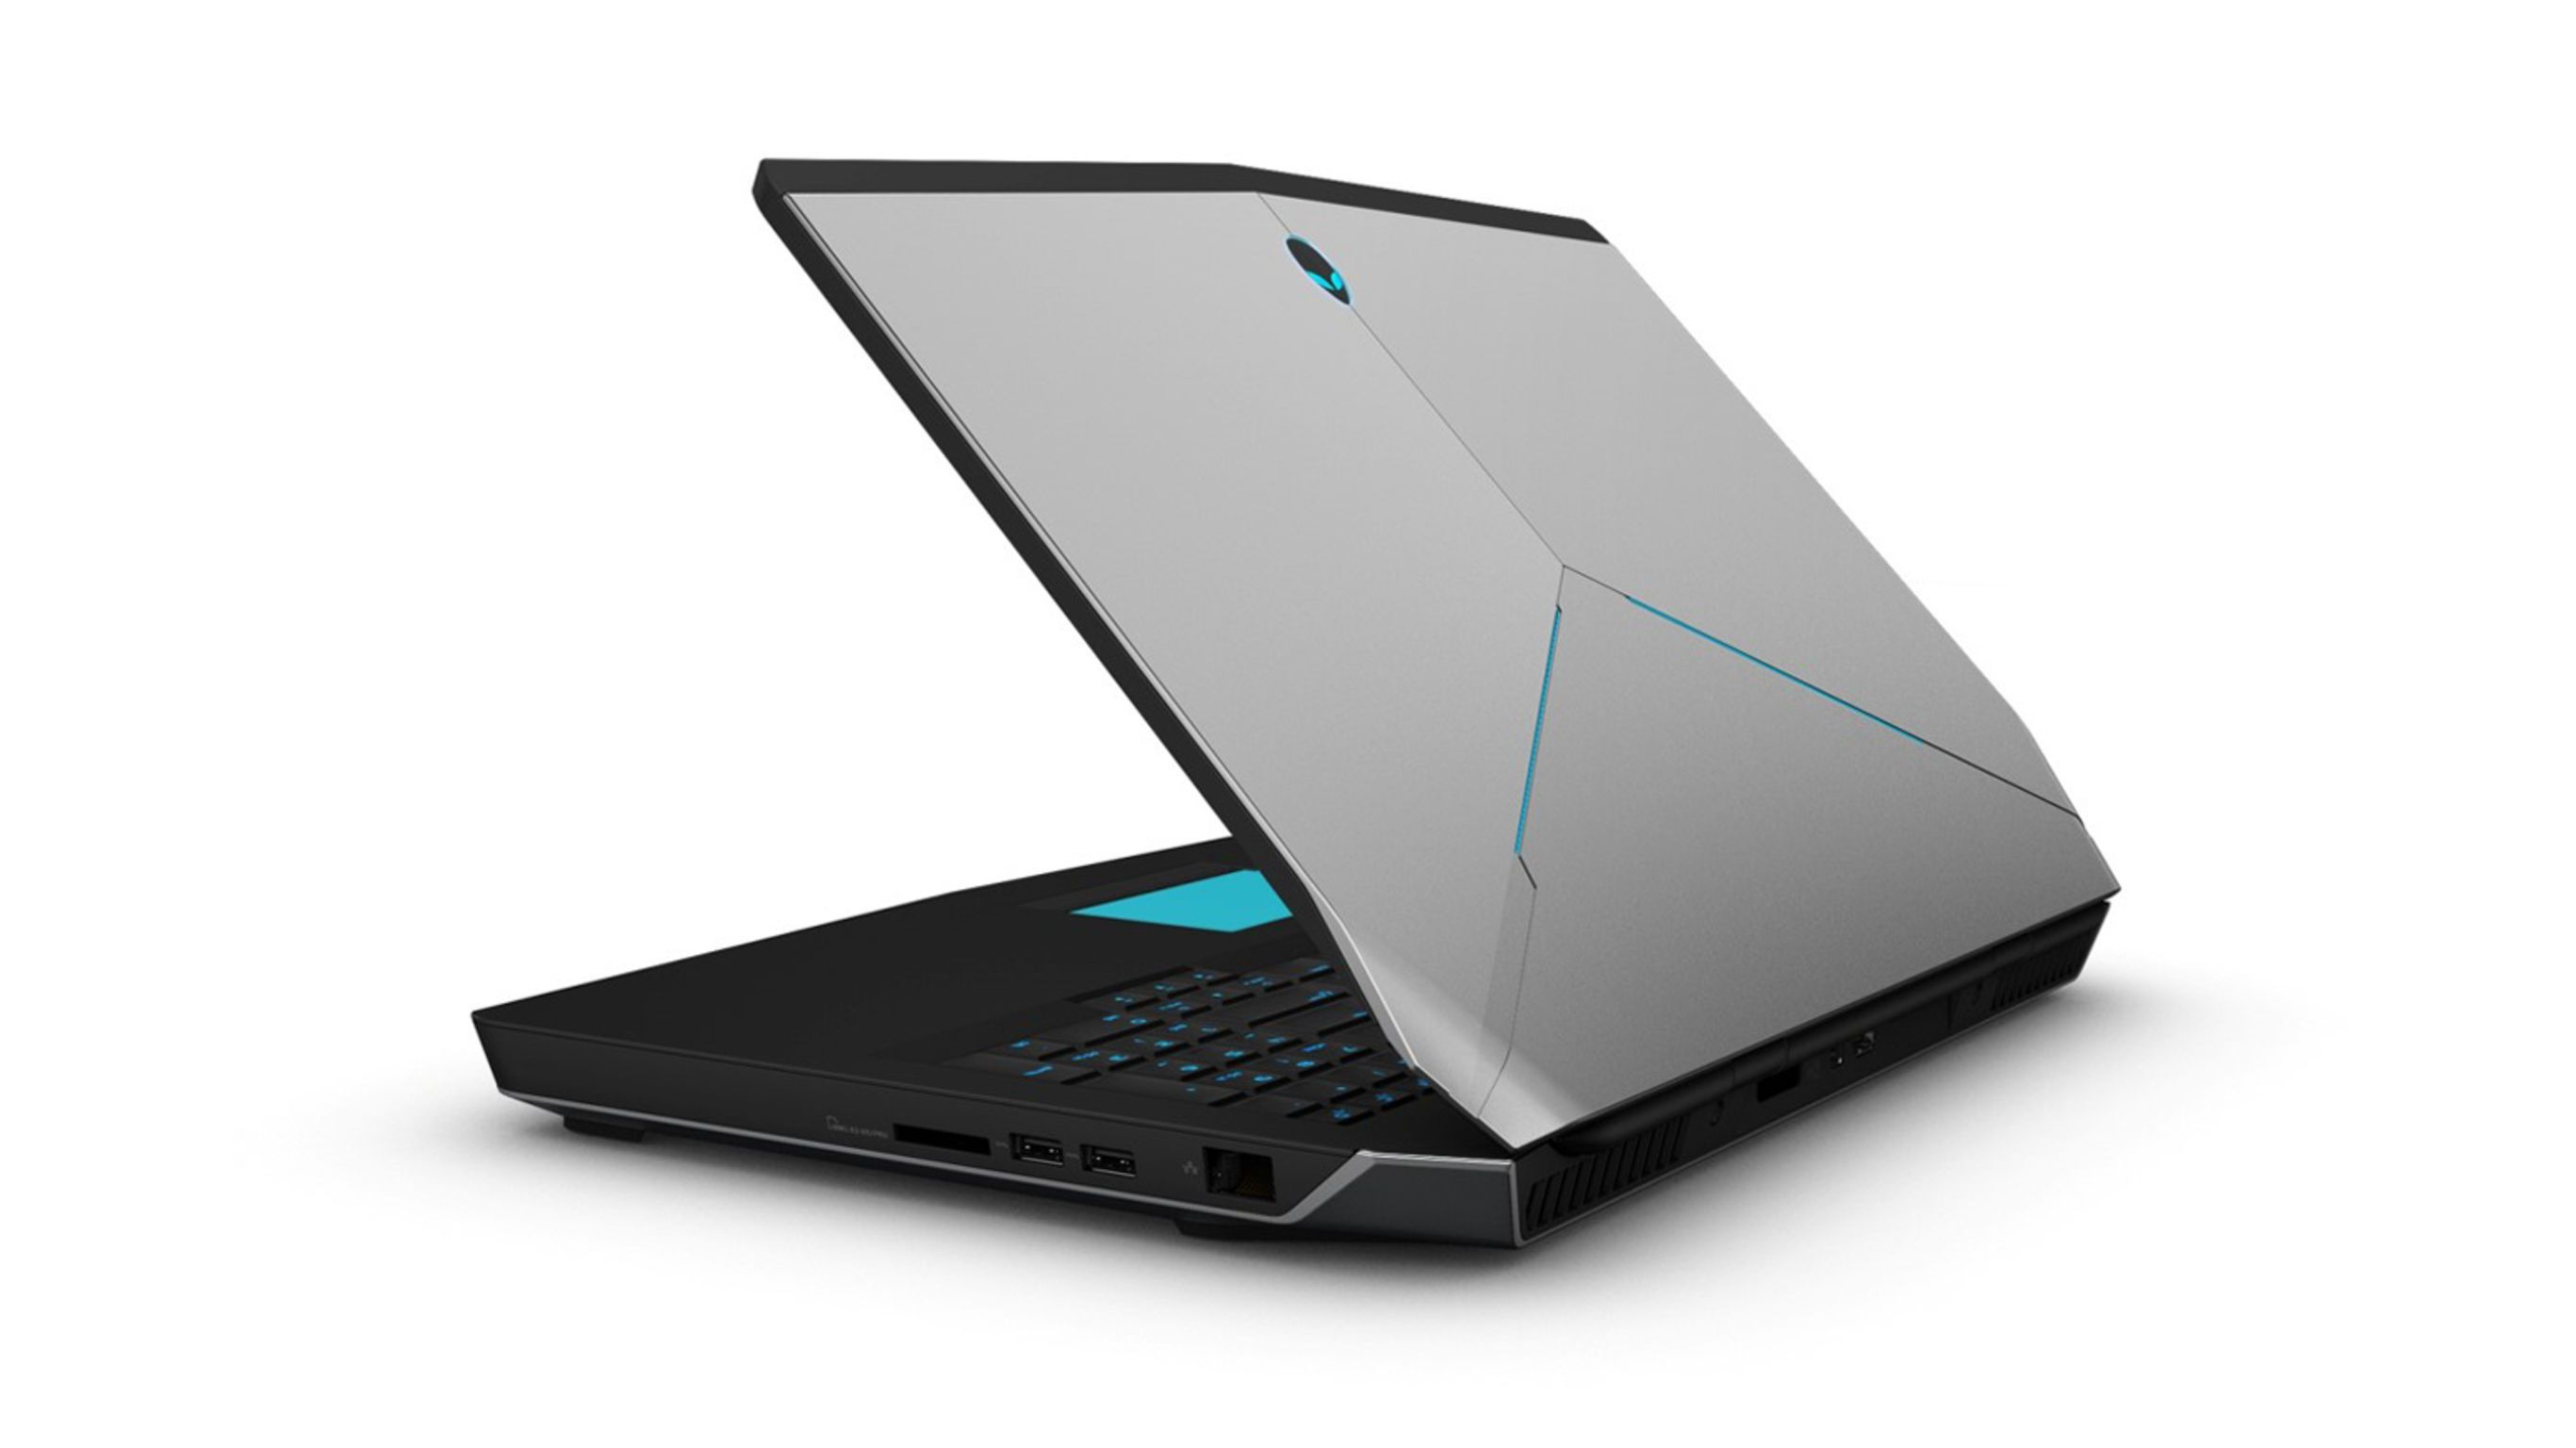 Alienware Laptop Wallpapers HD